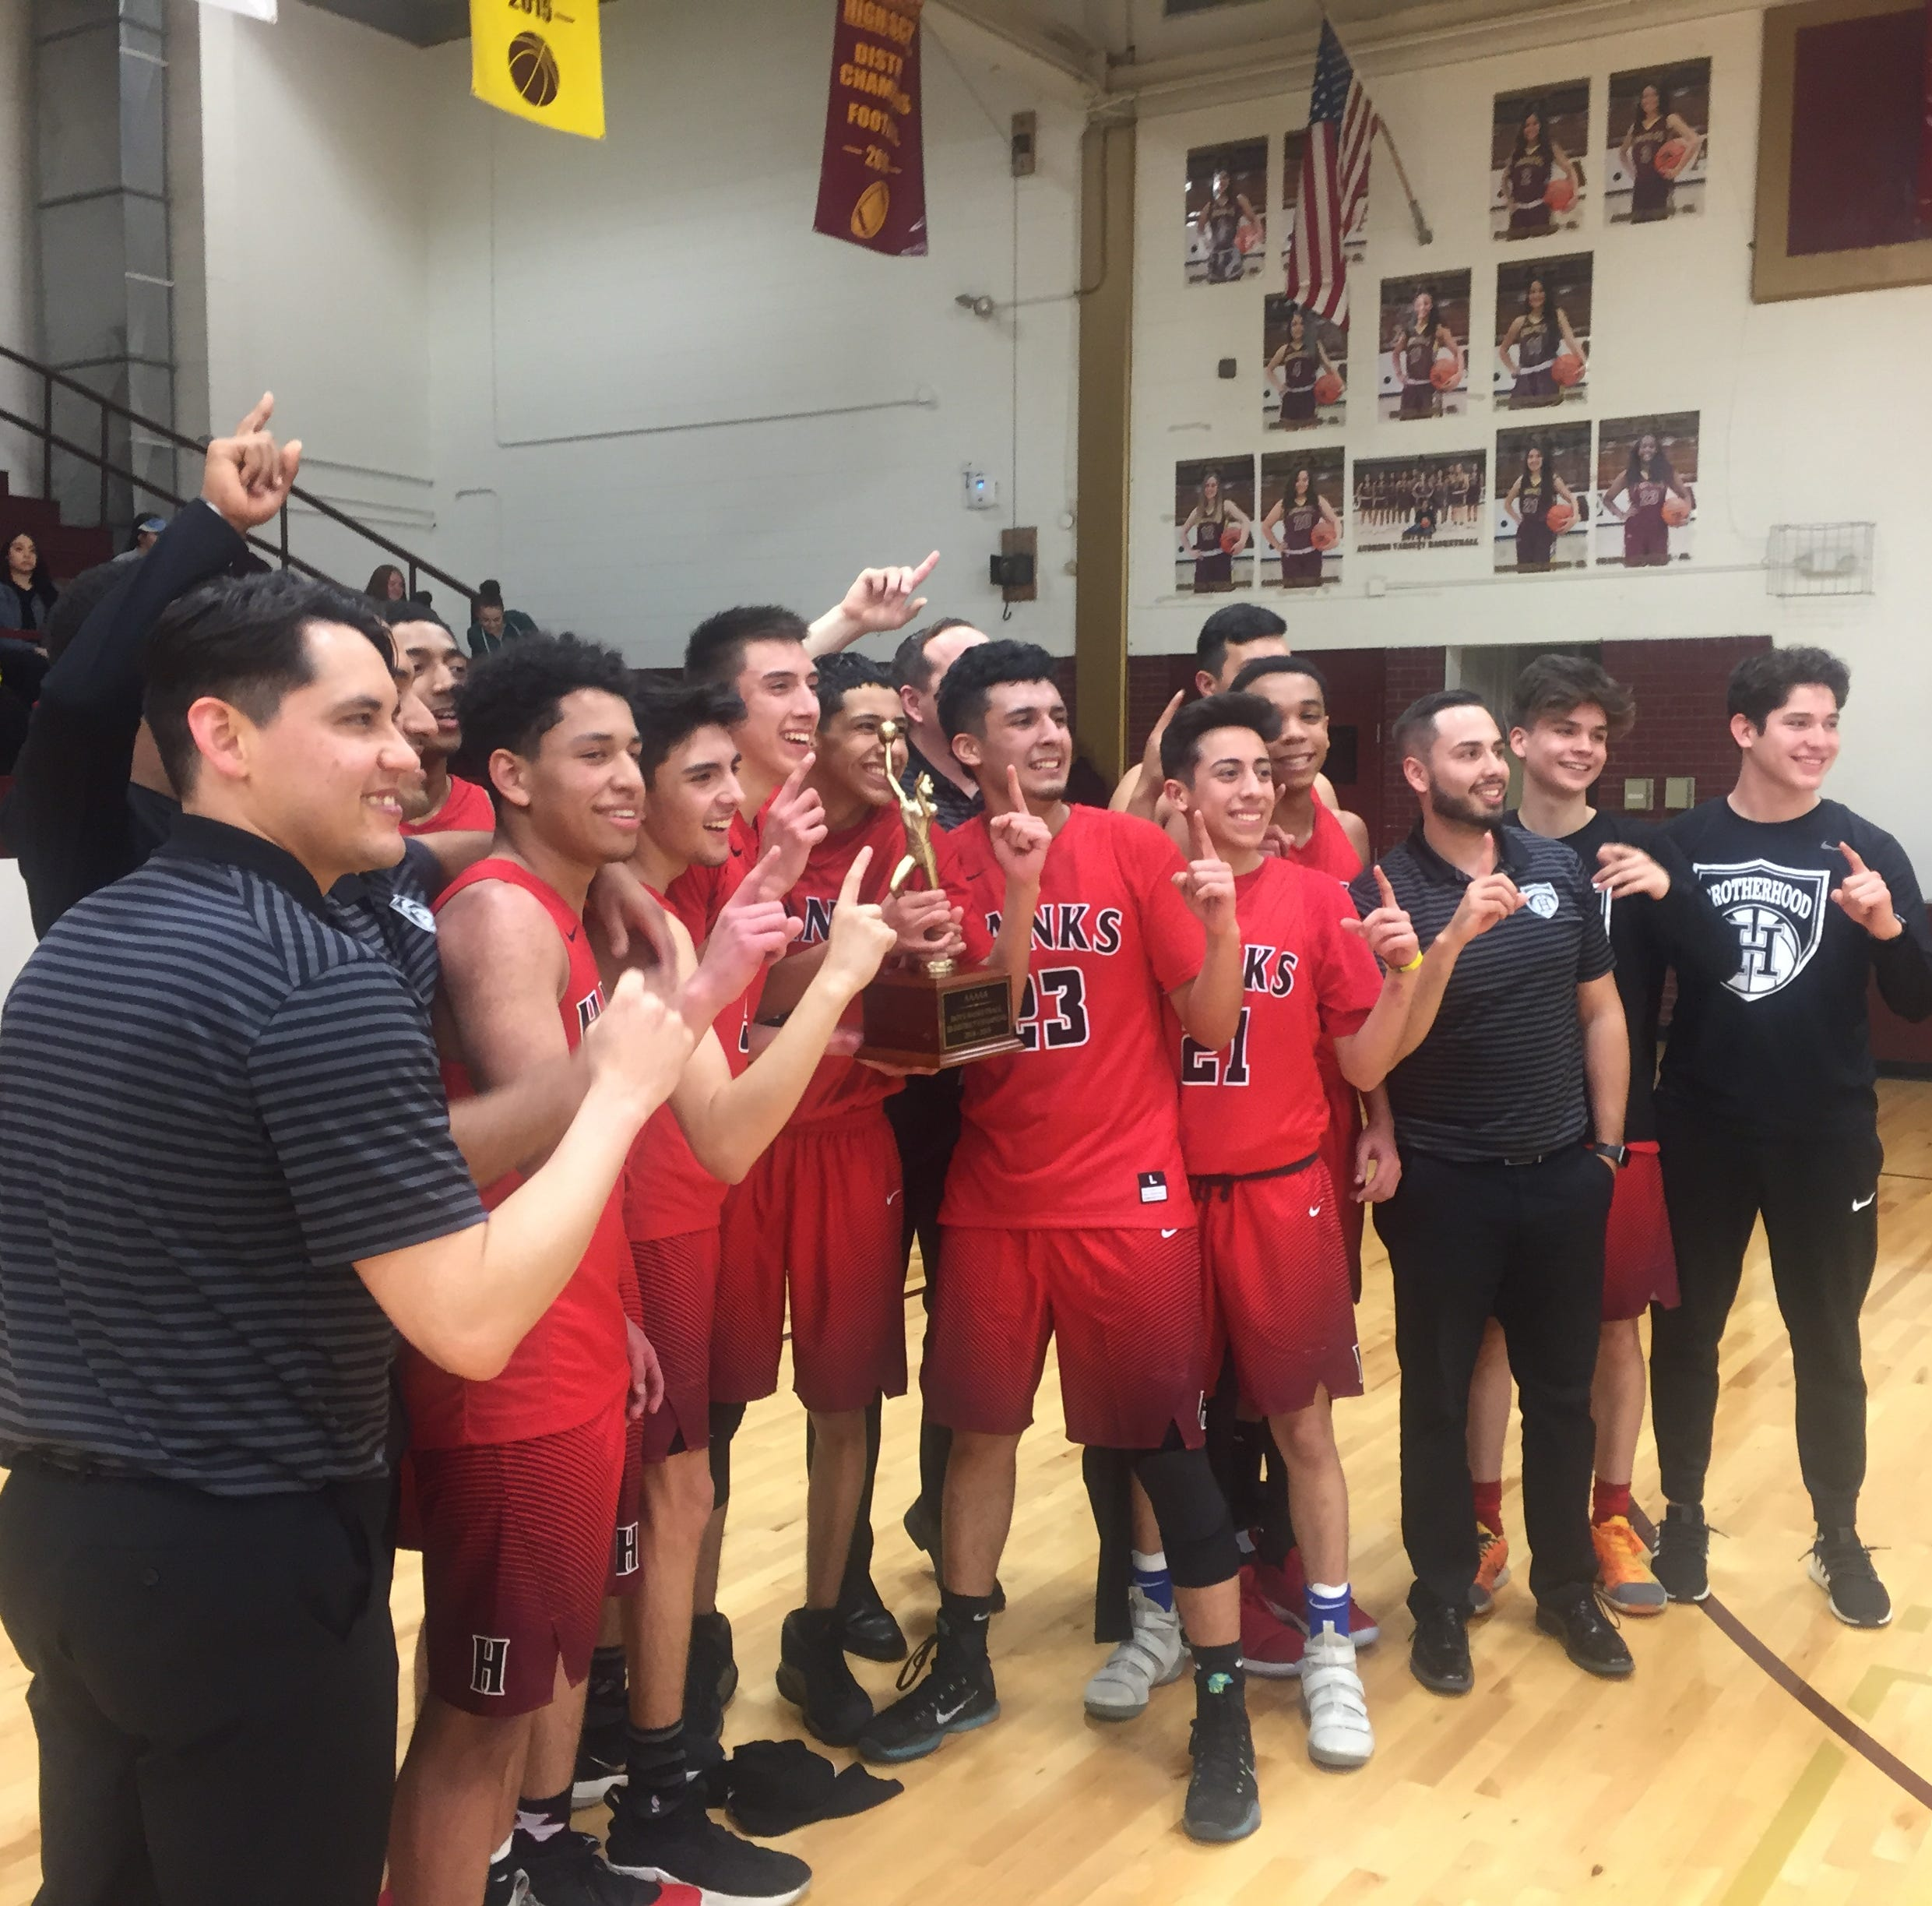 Hanks knocks off Andress in double overtime in 5A boys basketball playoffs